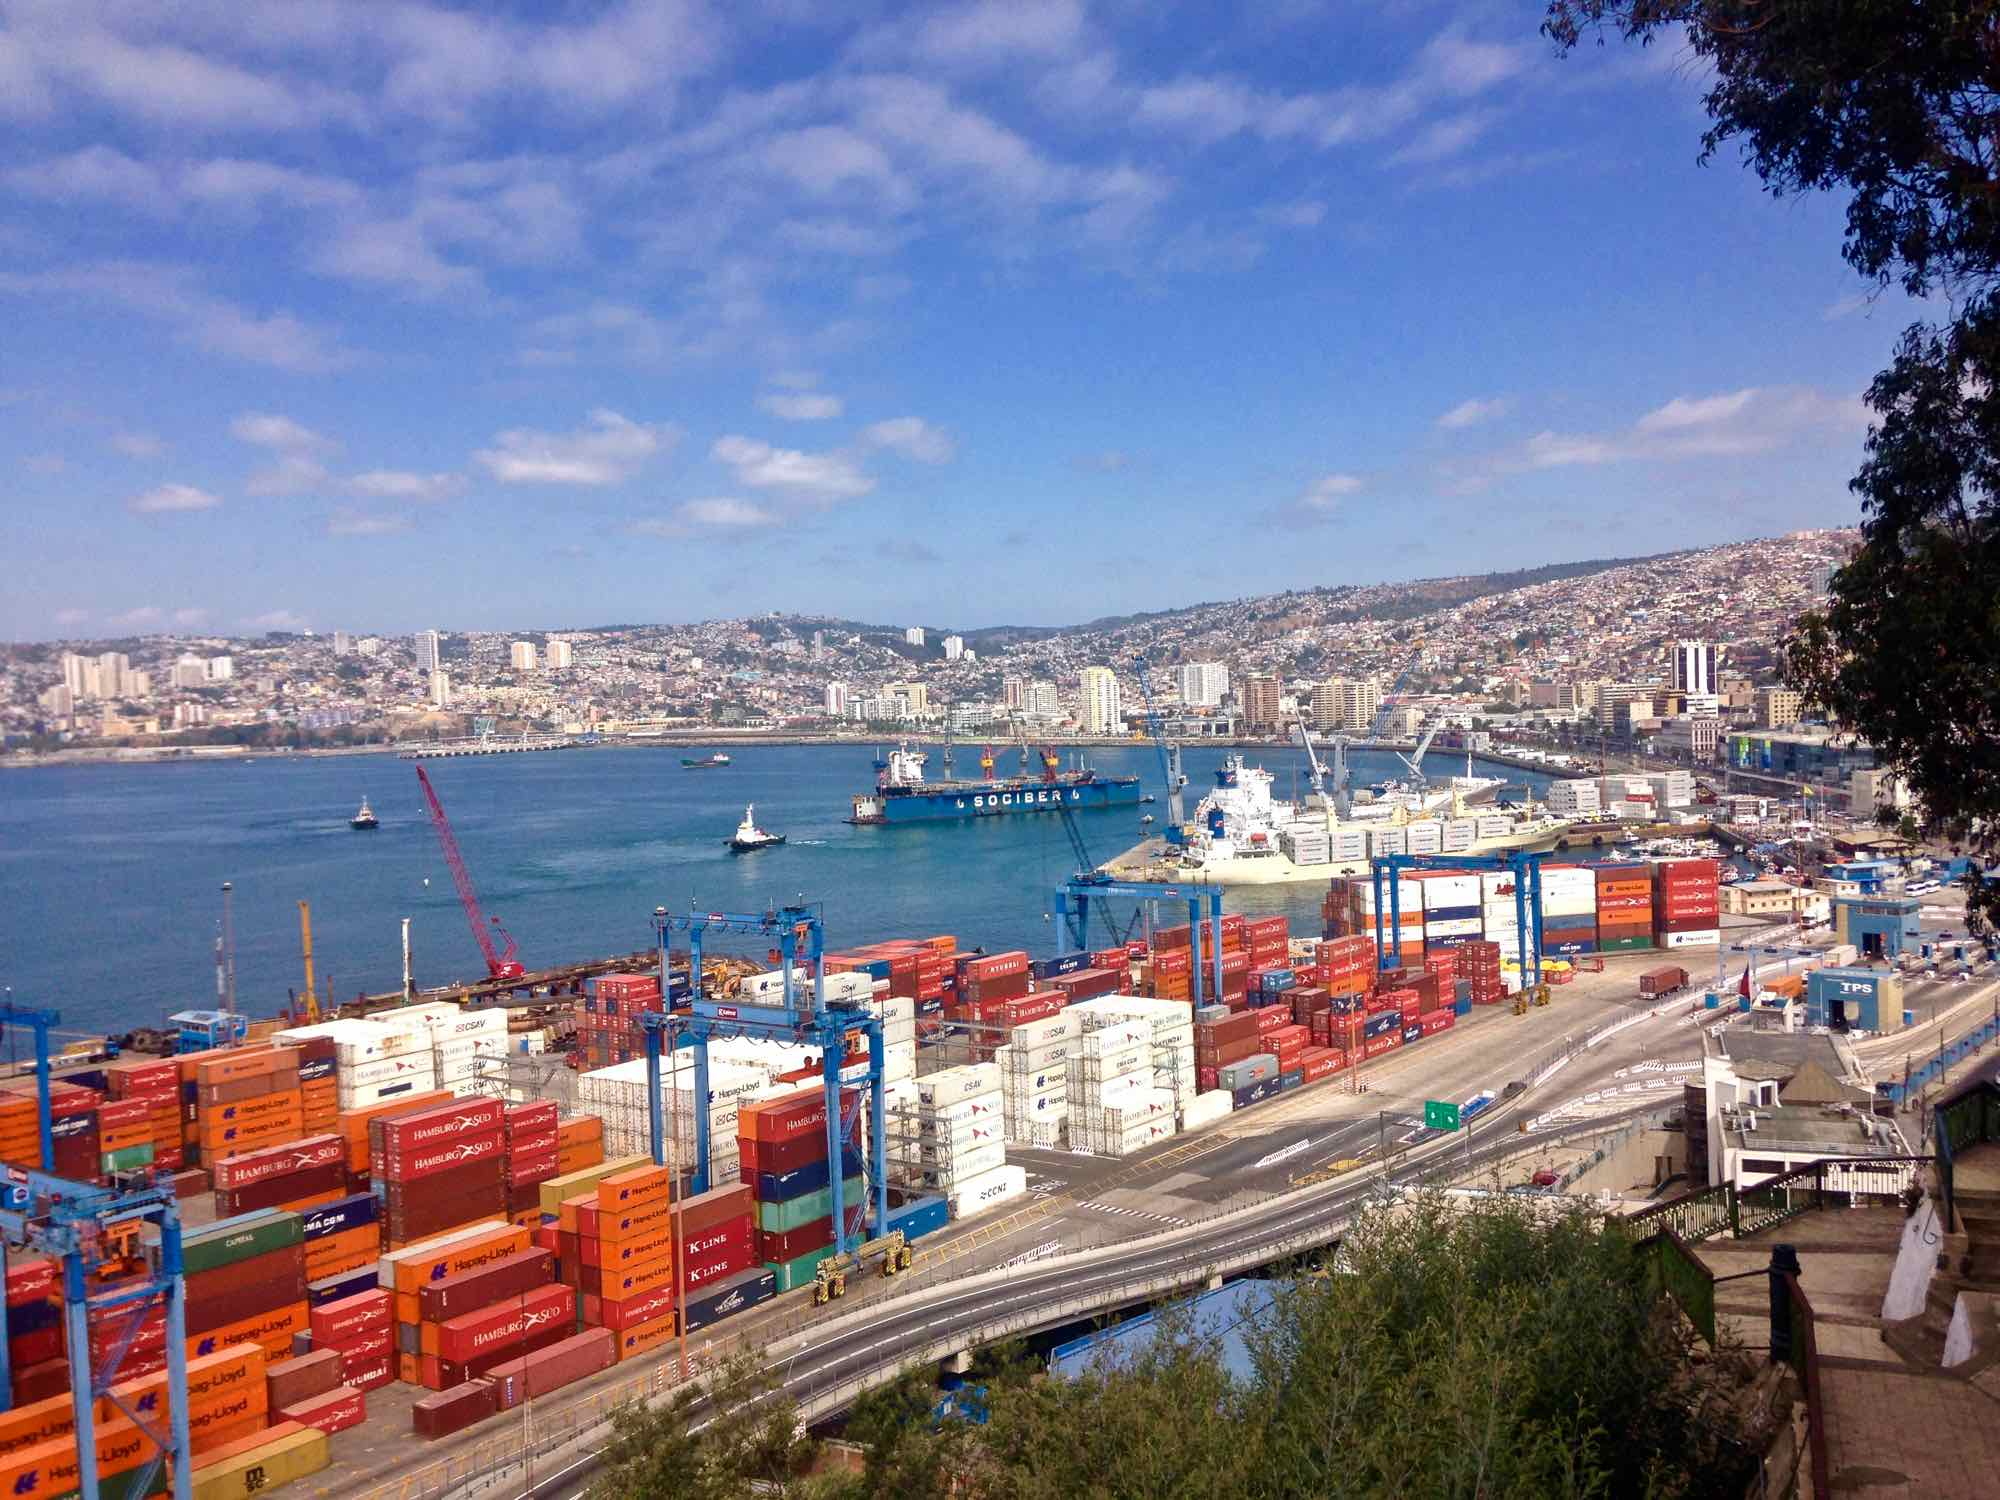 View of the port in Valparaiso Chile